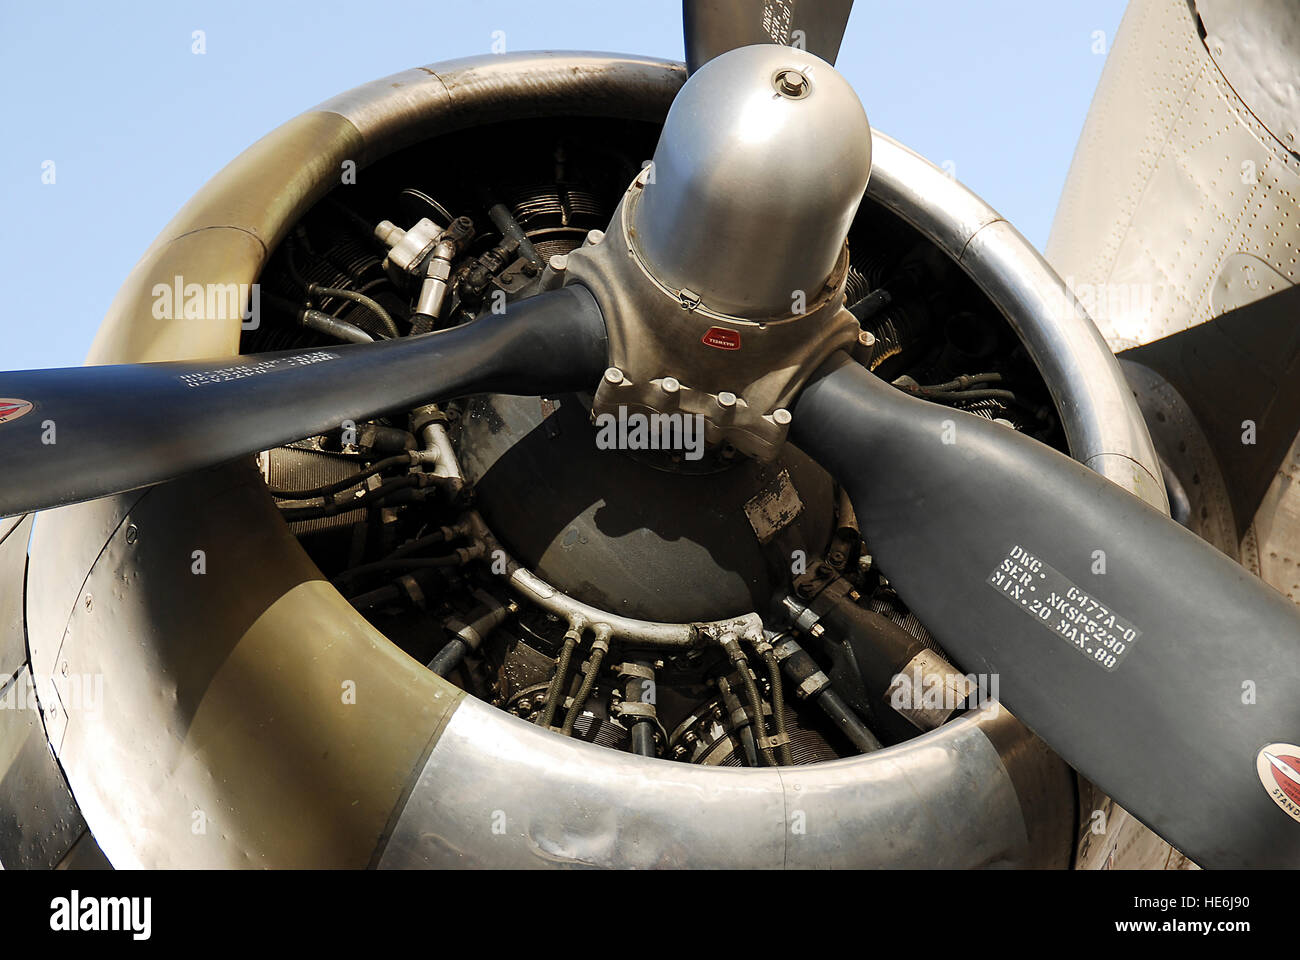 The propeller of a plane - Stock Image